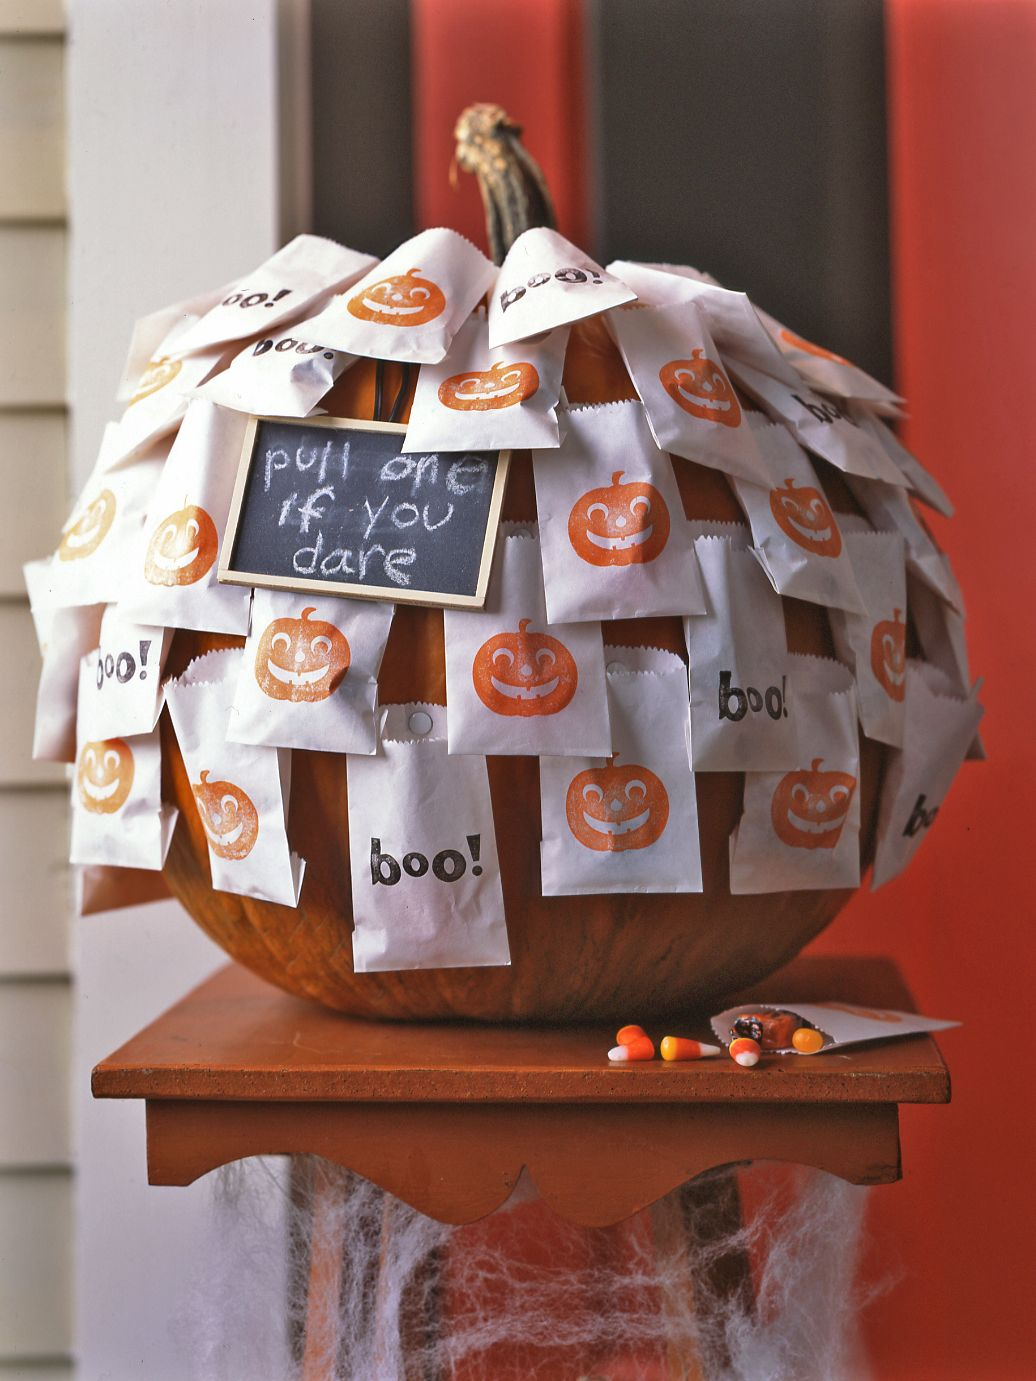 12 Clever Ways to Display Your Halloween Candy for Trick